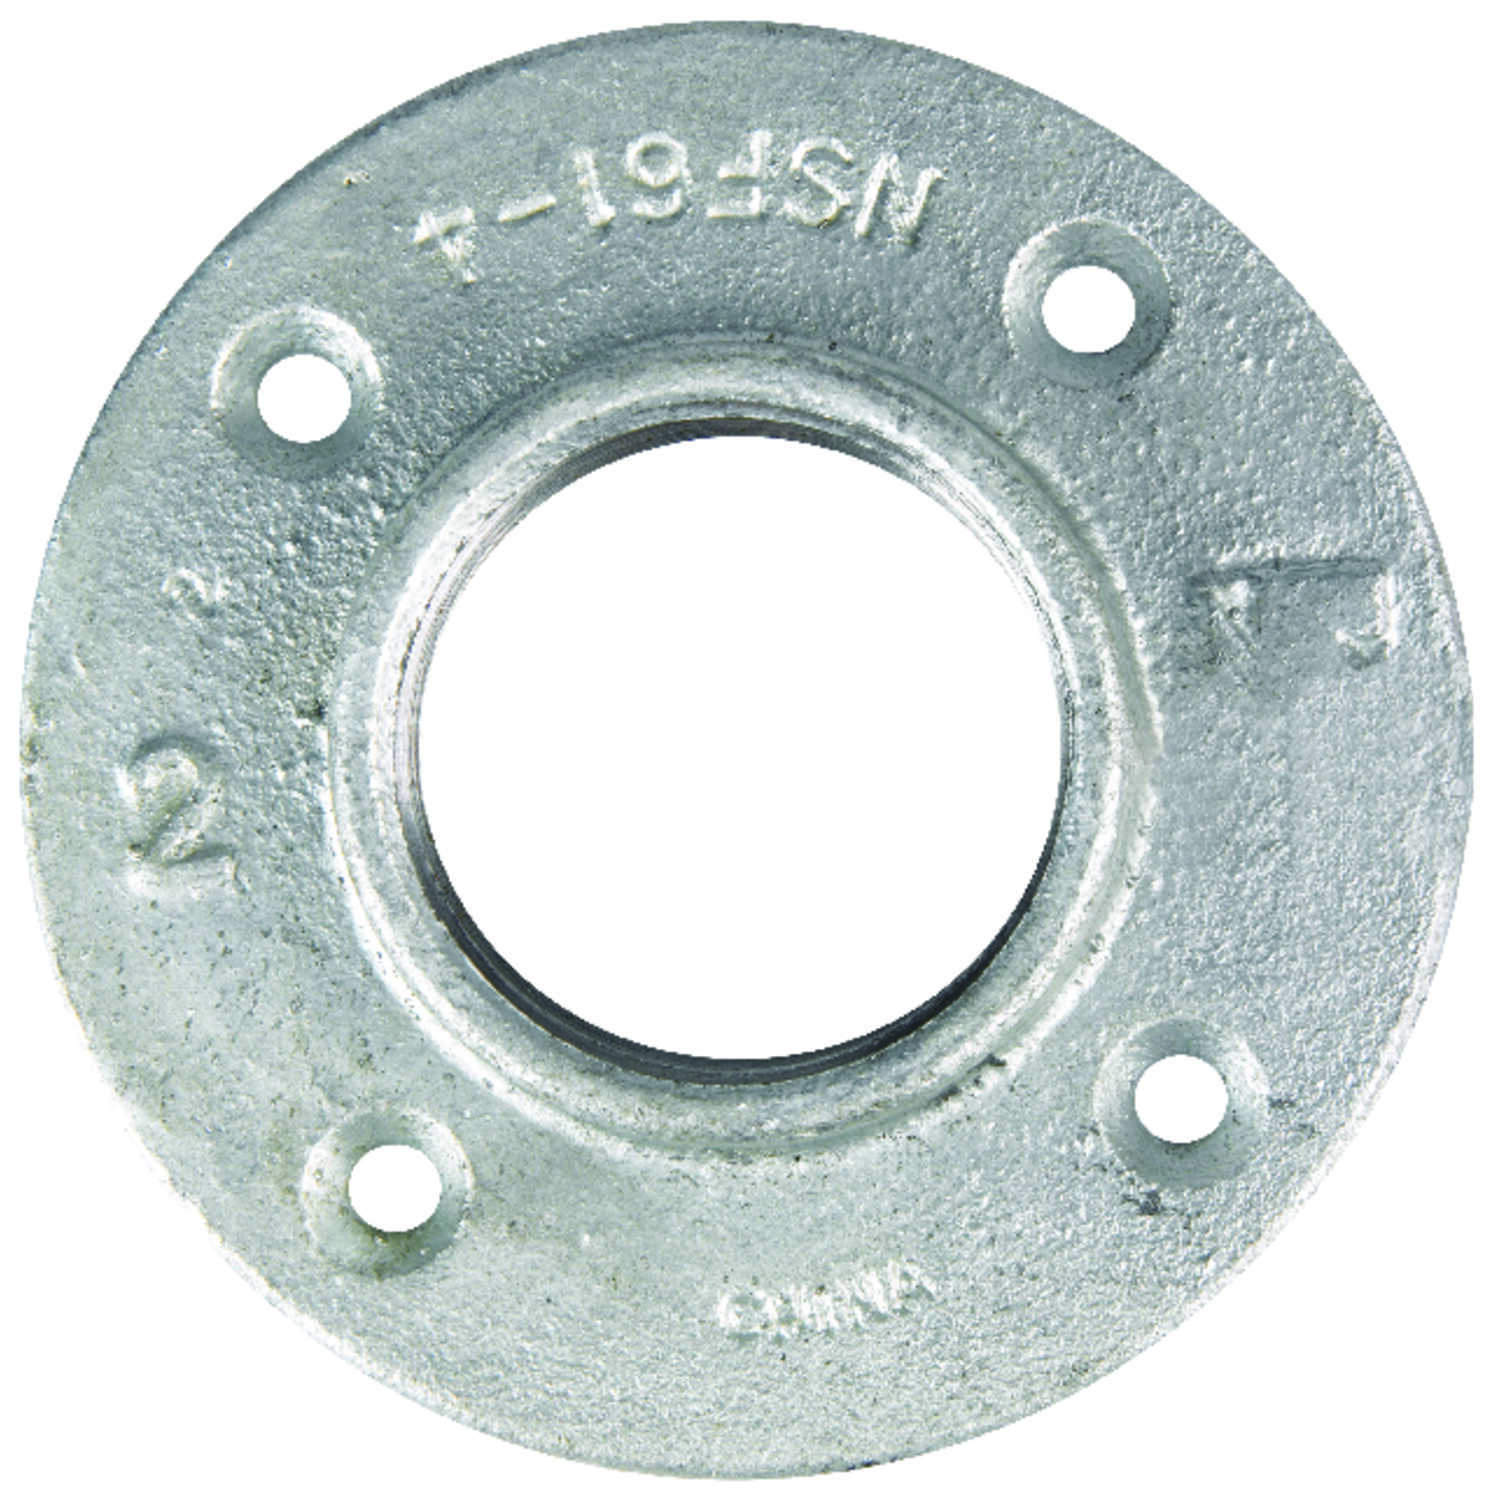 B & K  2 in. FPT   Galvanized  Malleable Iron  Floor Flange